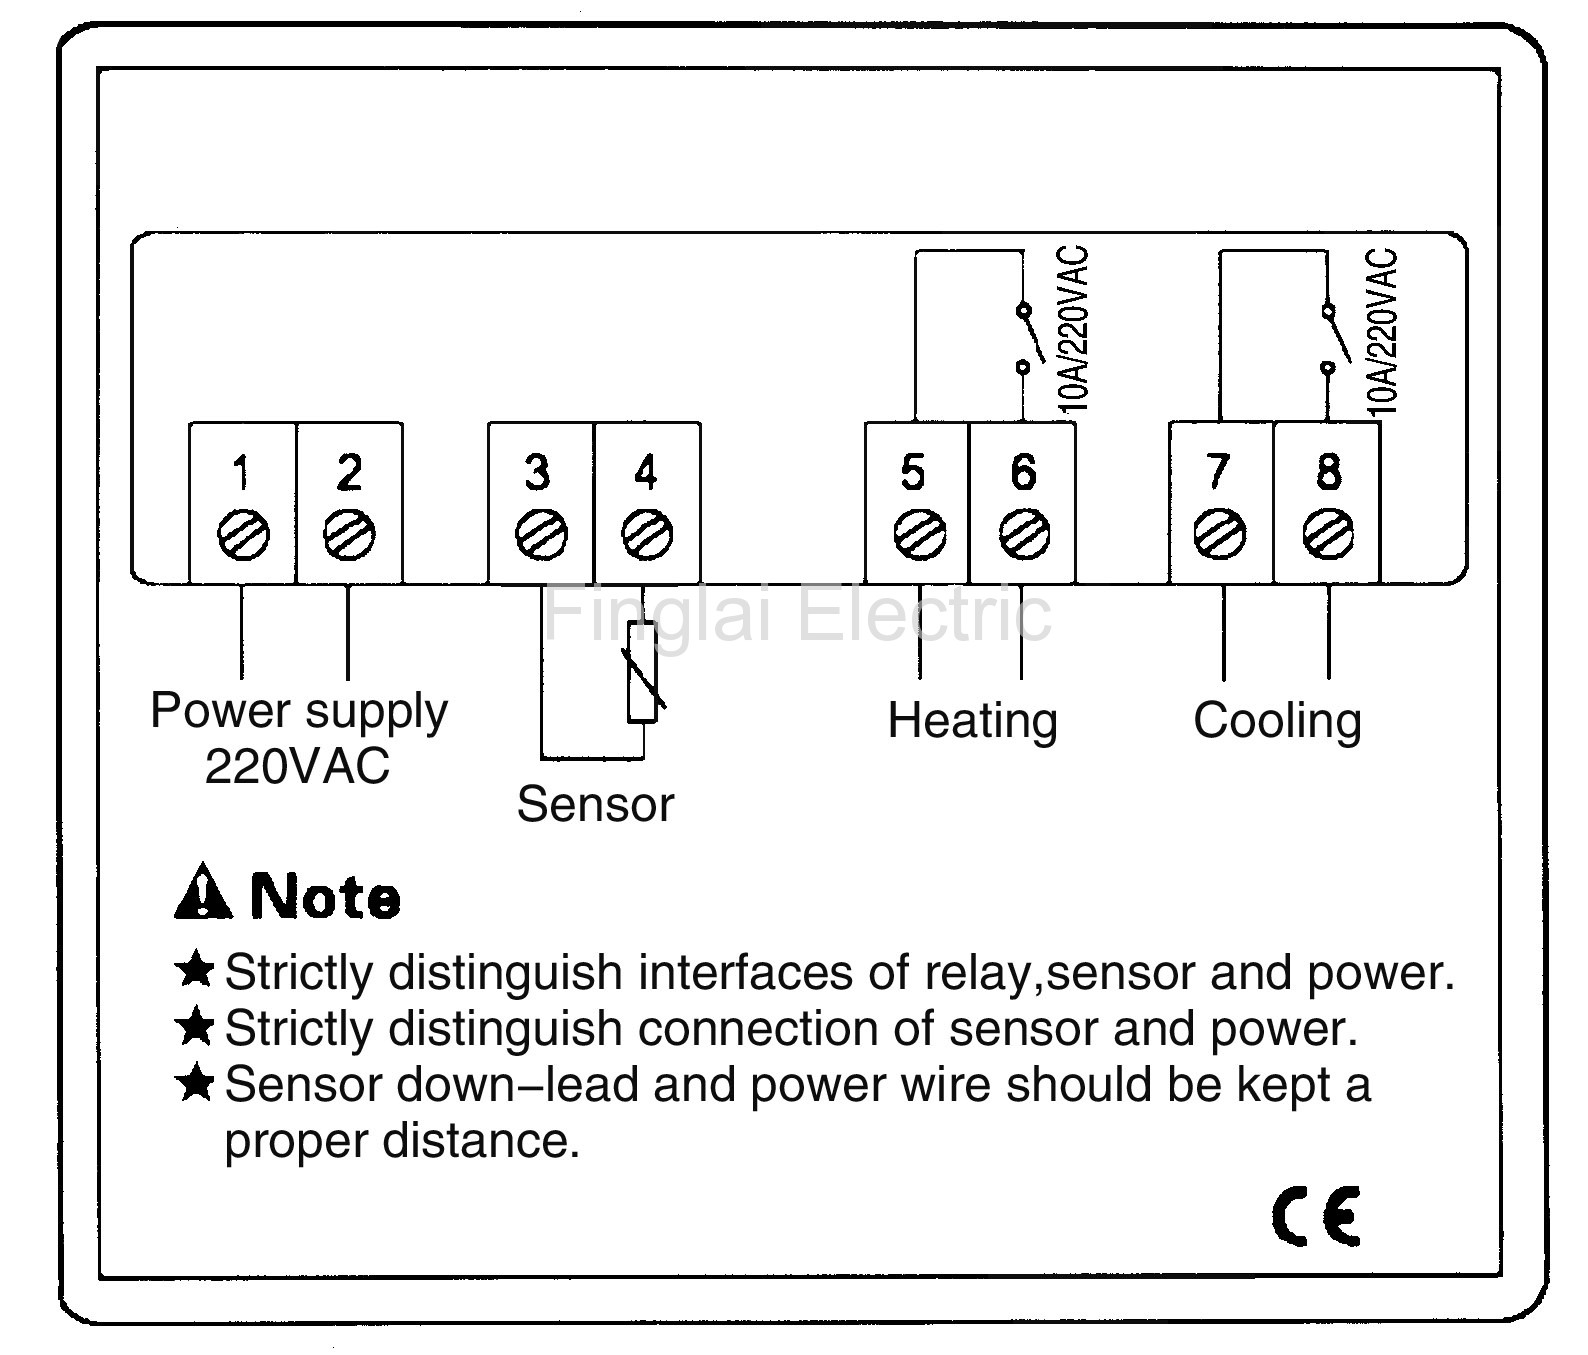 stc 1000 defrost temperature controller itc 1000 wiring diagram stc 1000 wiring diagram #13